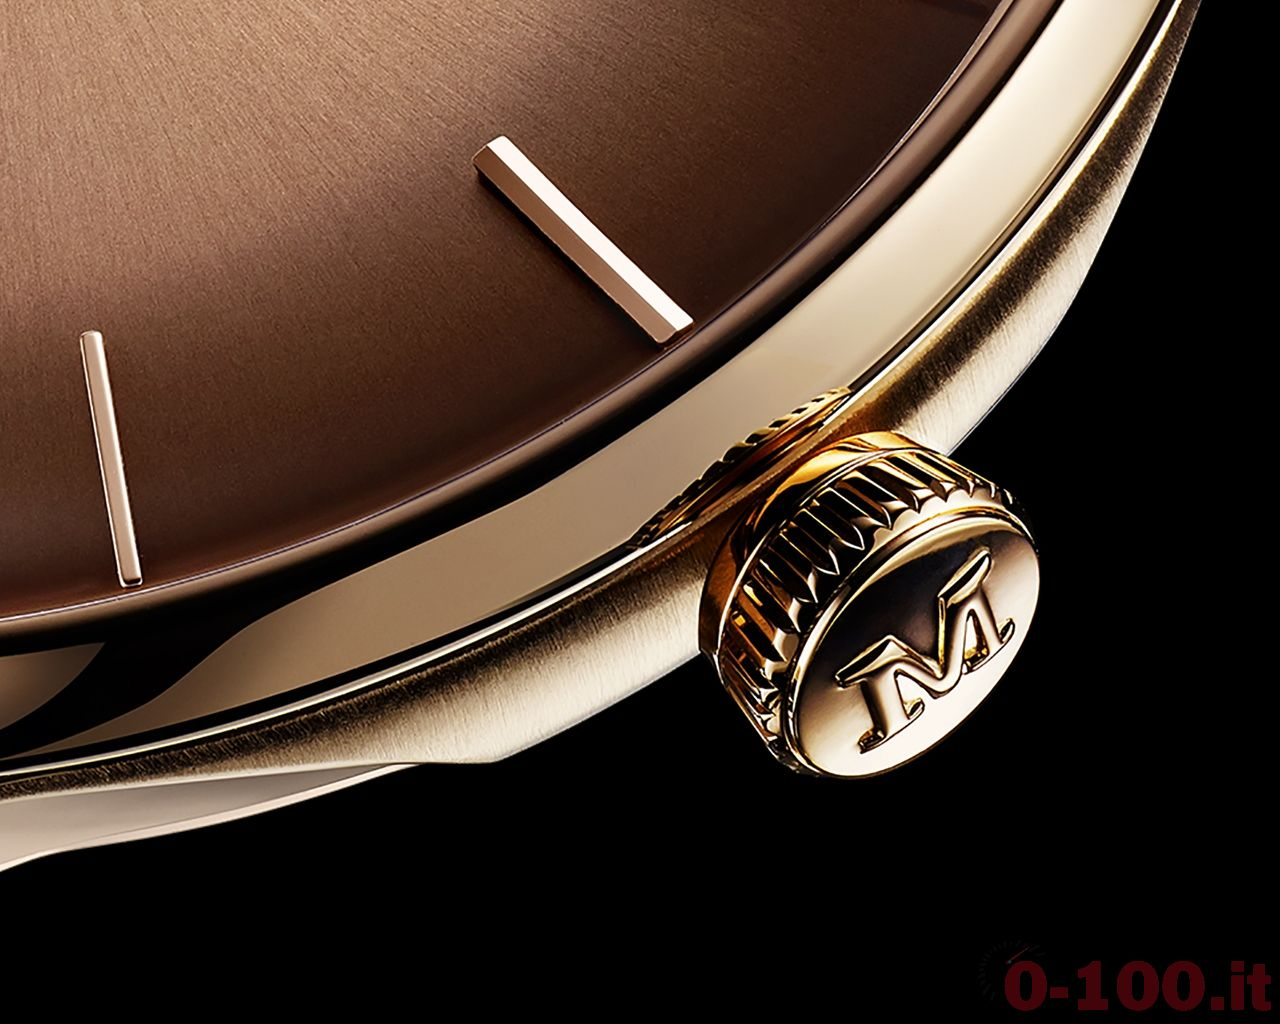 Baselworld-2014-H. Moser & Cie Venturer Small Seconds _0-1008